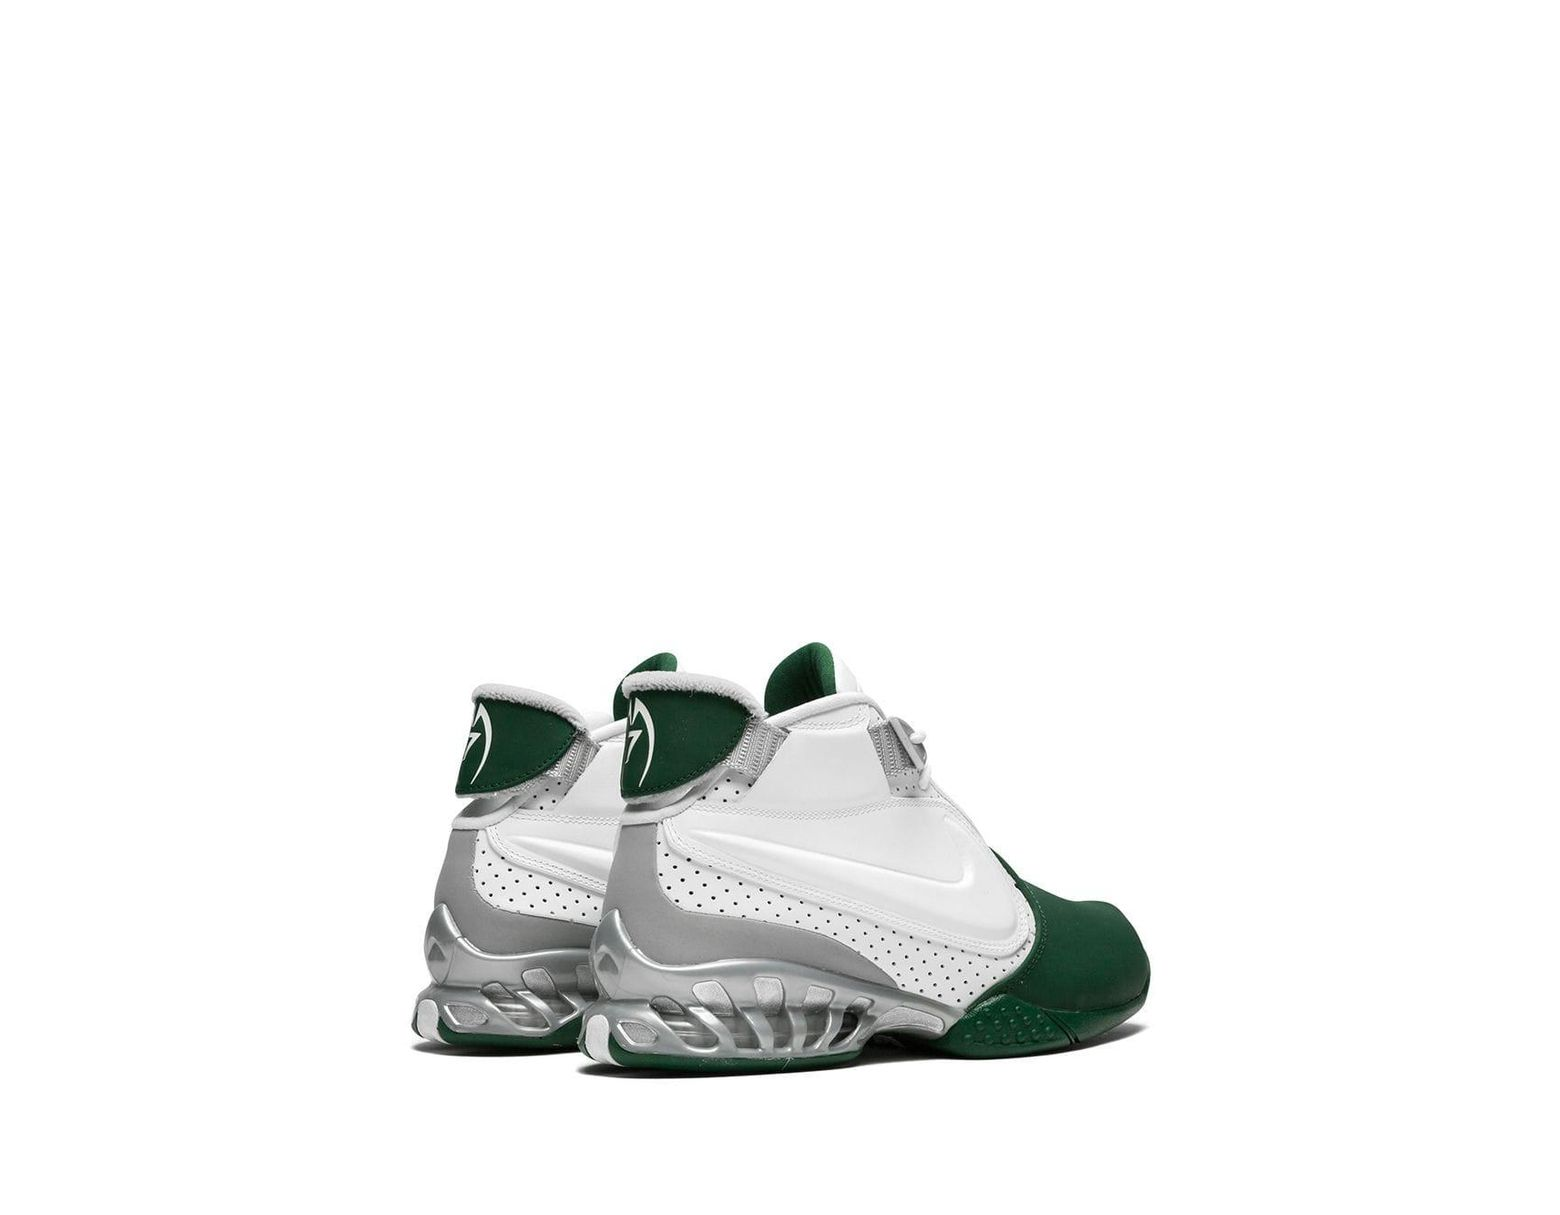 721749e3 Nike Air Zoom Vick Ii Sneakers in White for Men - Lyst